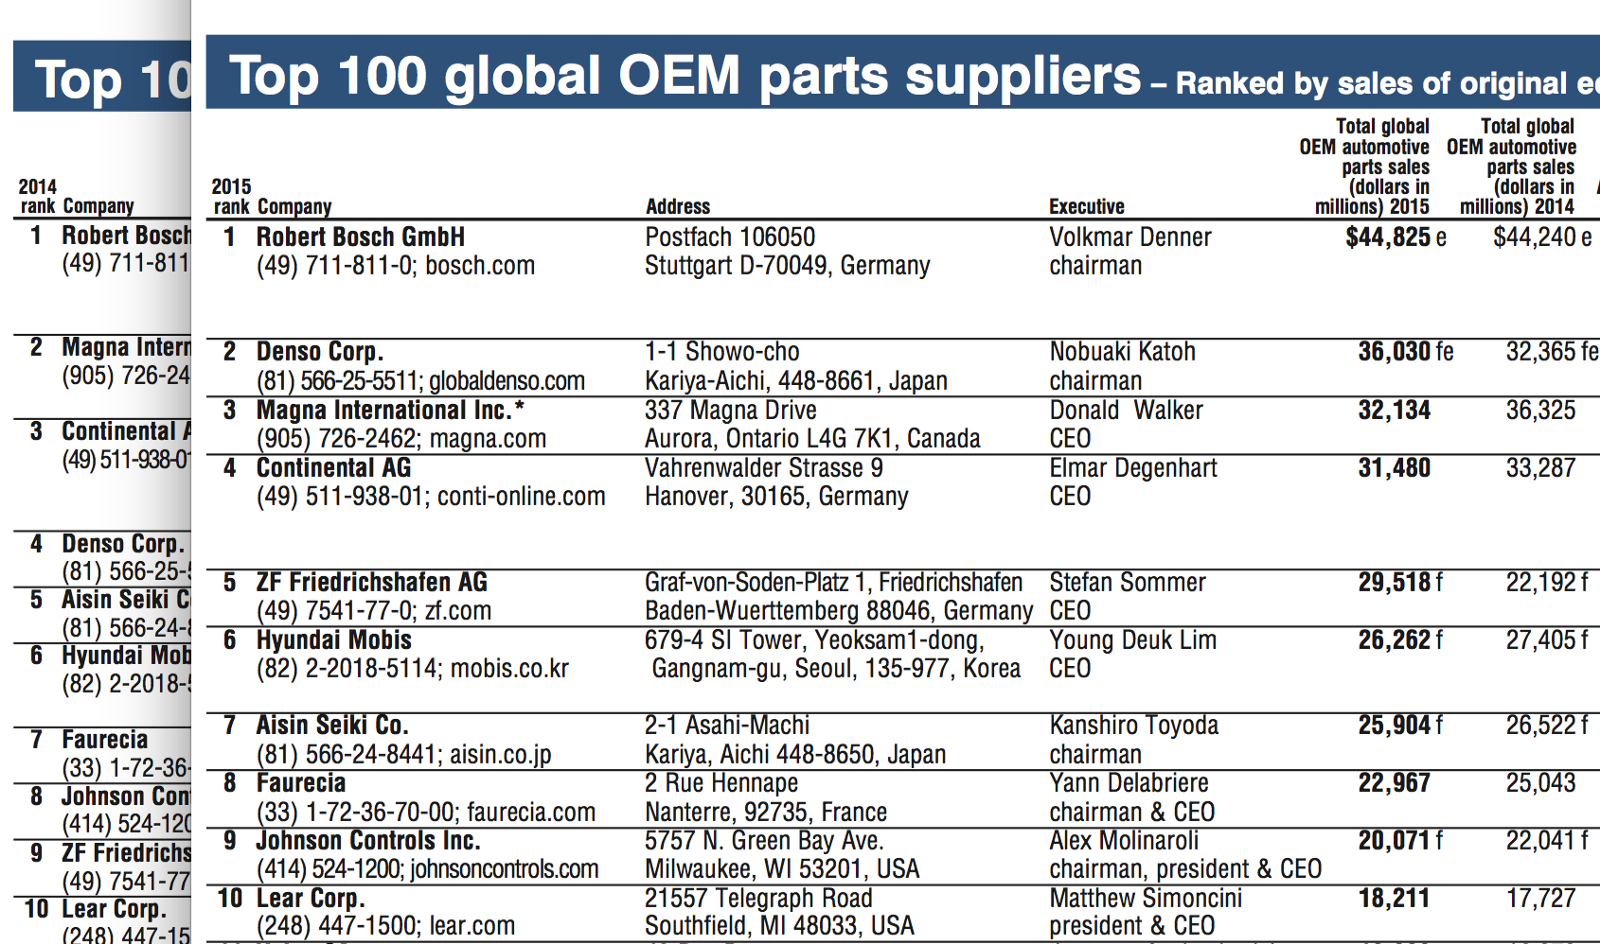 top 100 global oem parts suppliers ranked by sales of original equipment parts in 2015. Black Bedroom Furniture Sets. Home Design Ideas